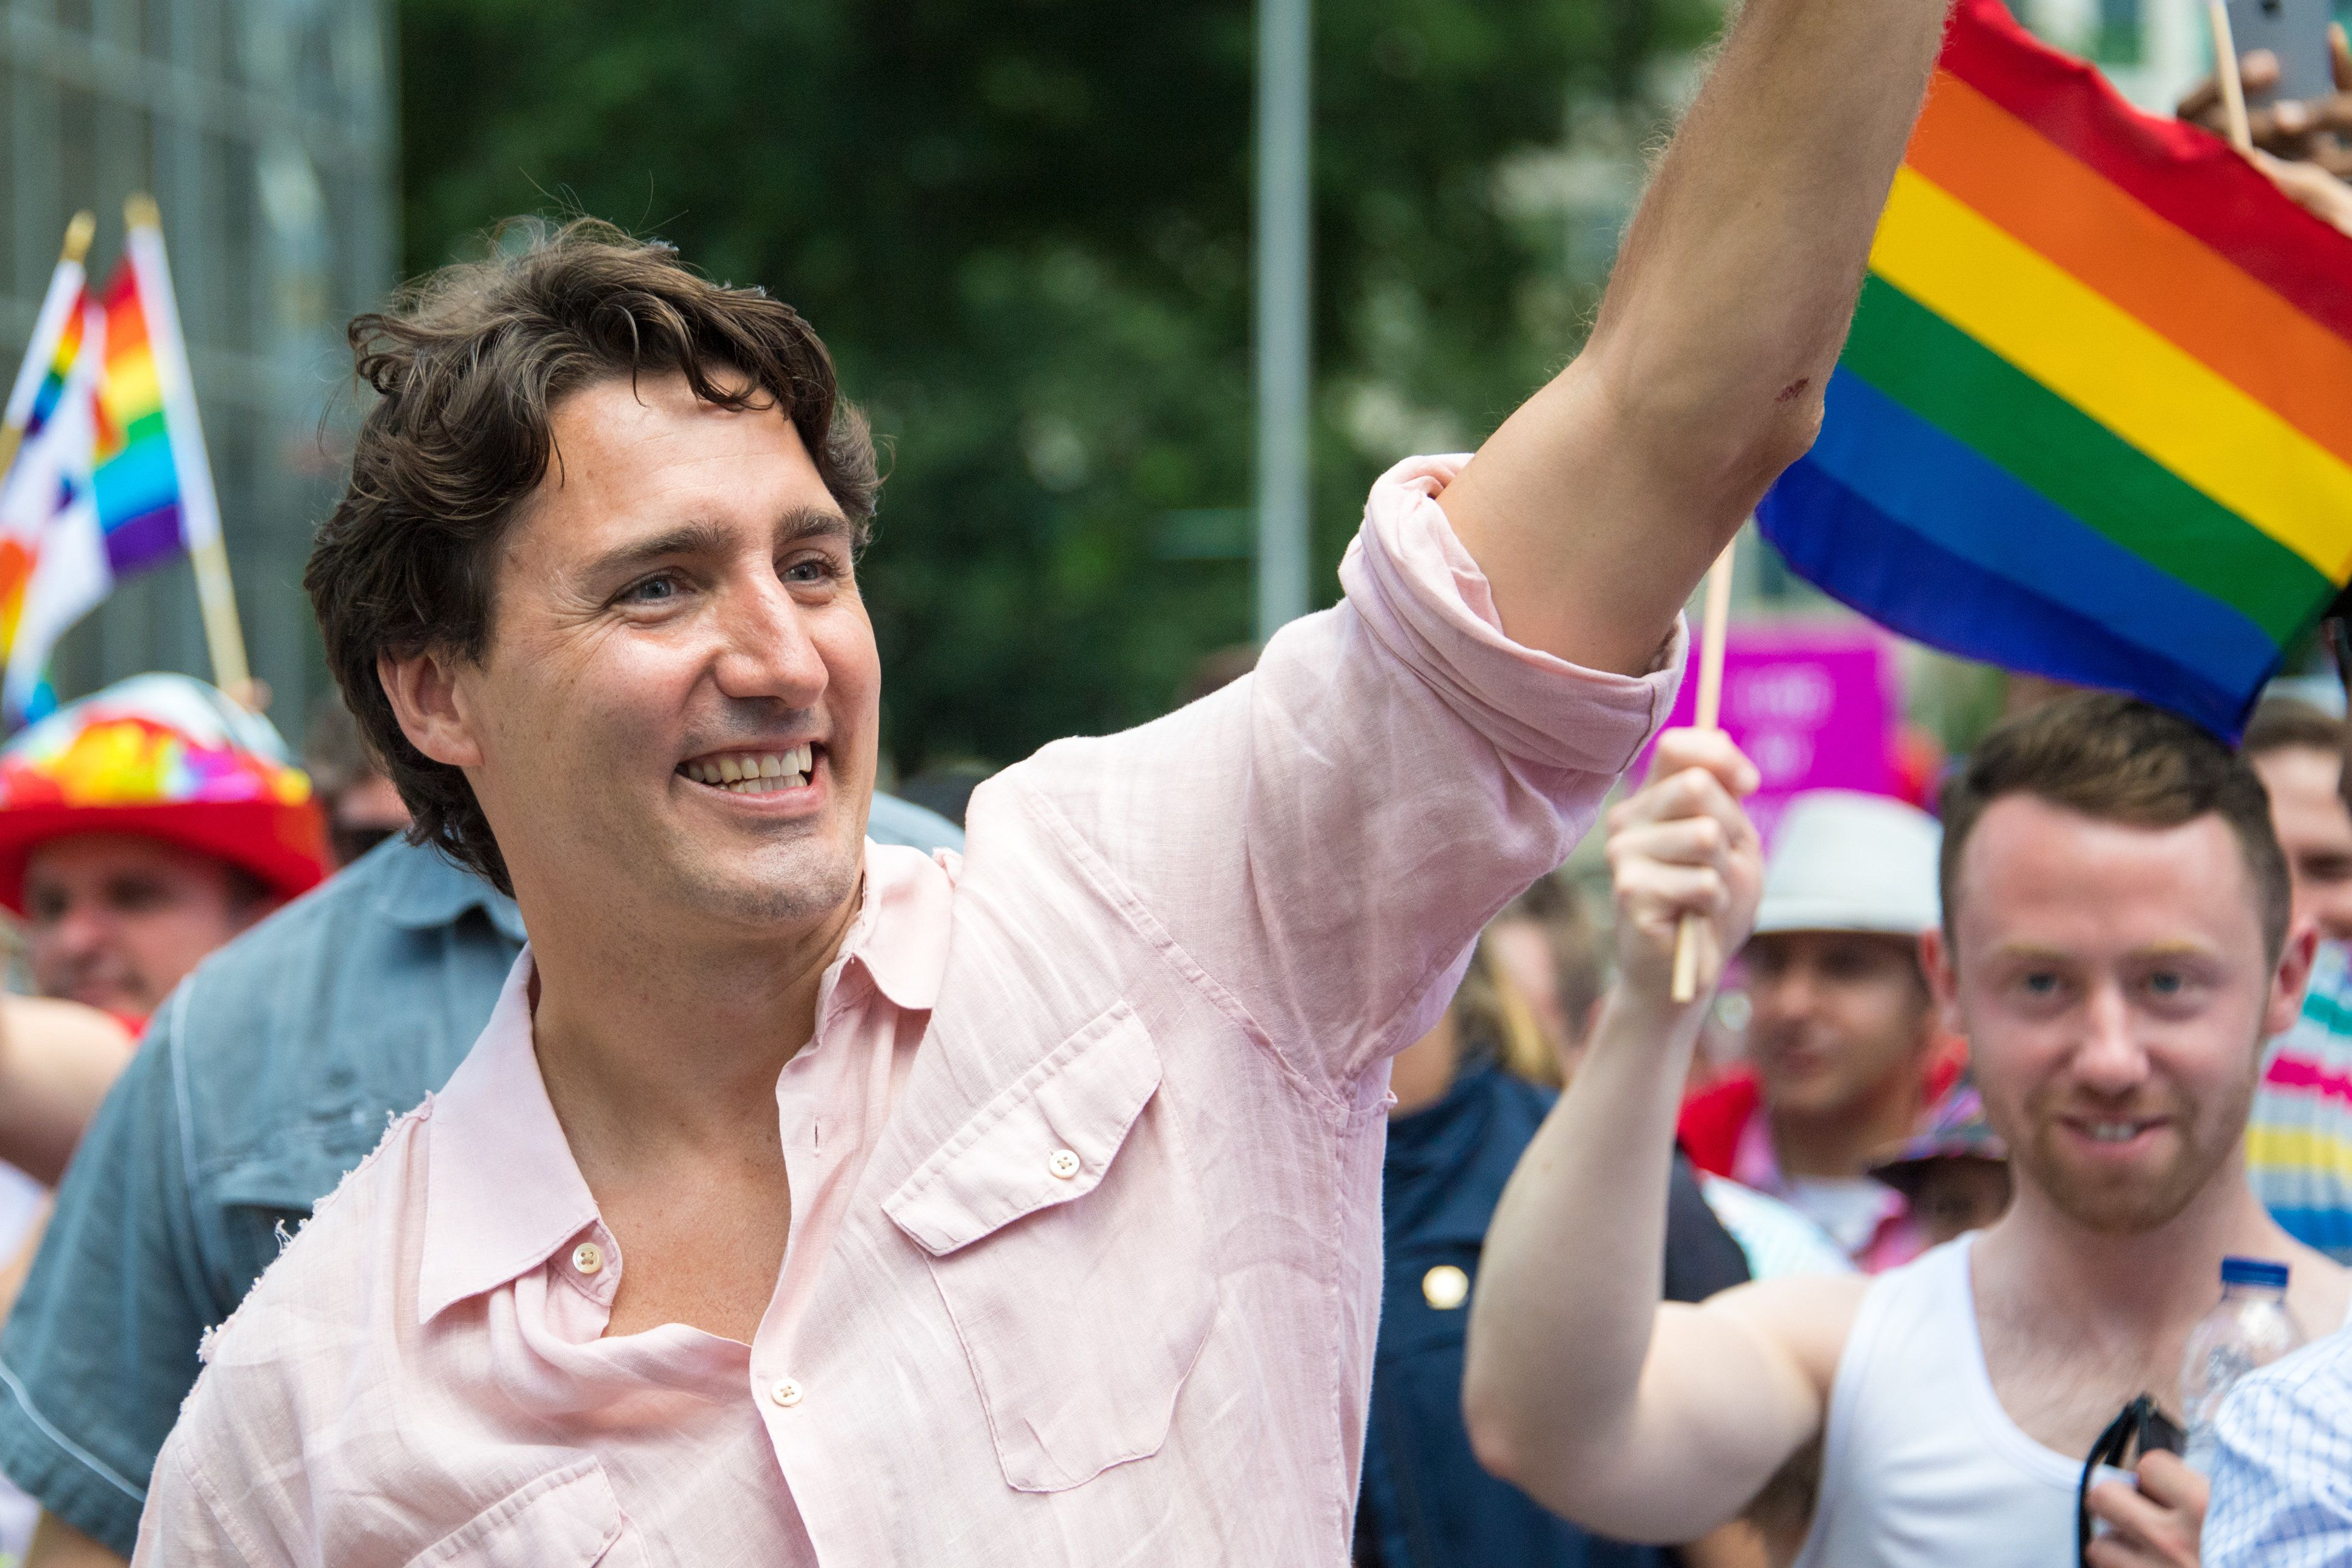 Canadian Prime Minister Justin Trudeau marches in Toronto's Pride Parade in June